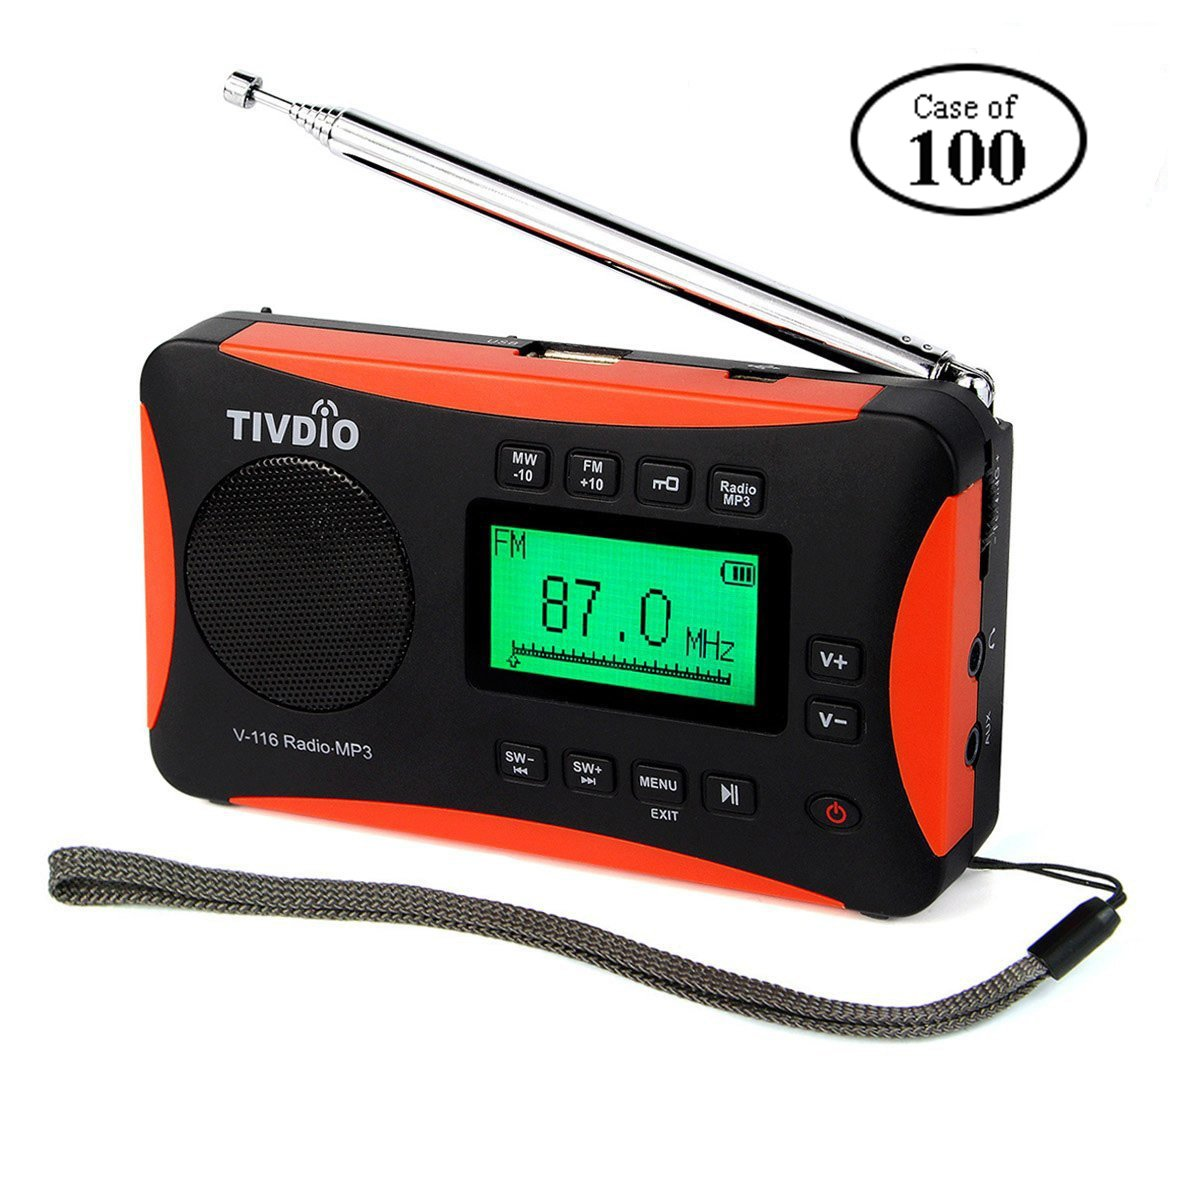 Case of 100,TIVDIO V-116 Portable Shortwave Radio with AM FM Transistor  Support Micro-SD Card AUX Input MP3 Player Speaker Alarm Clock Sleep